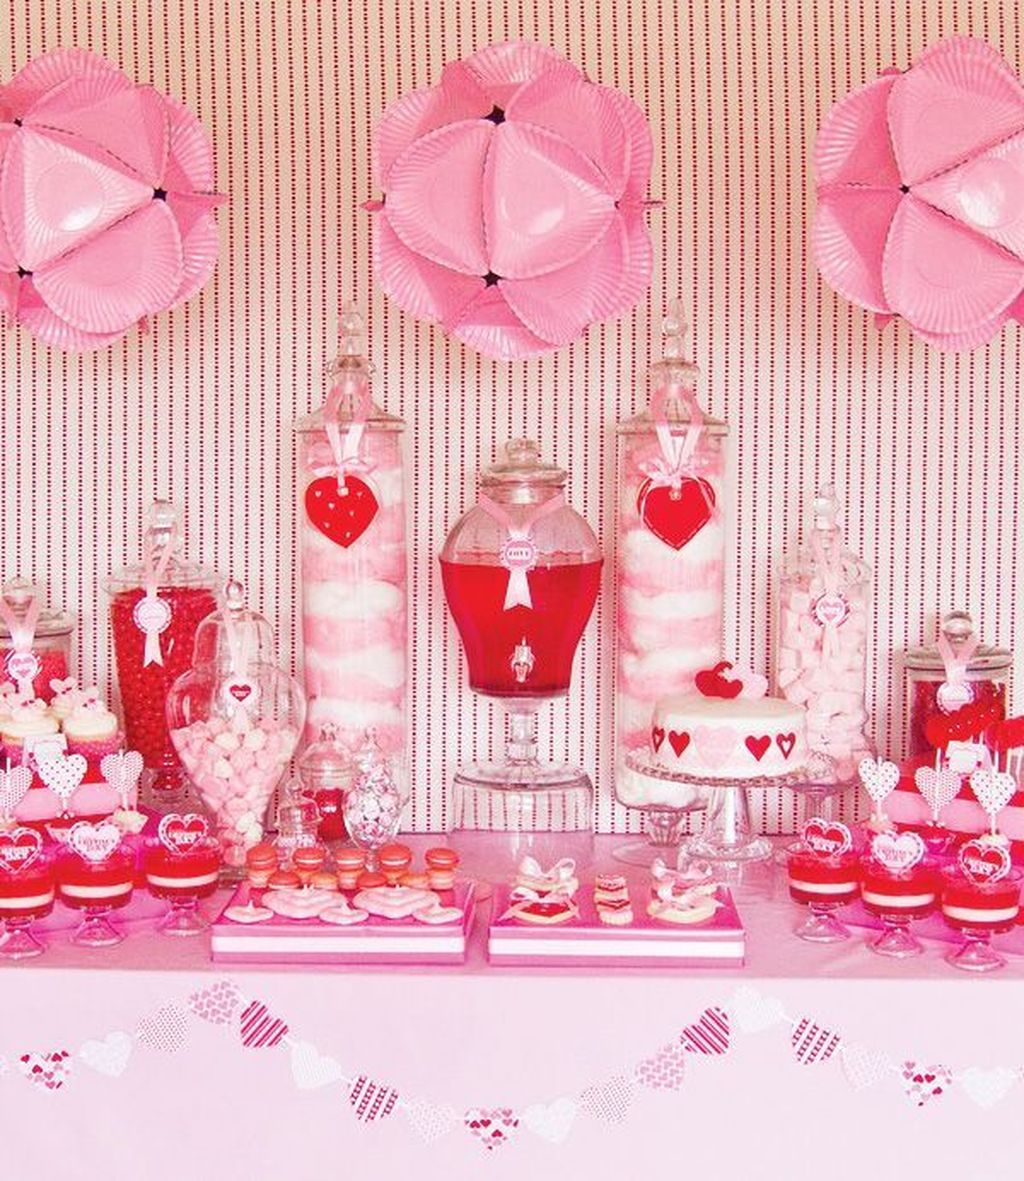 Stunning Valentine Theme Party With A Romantic Feel 08